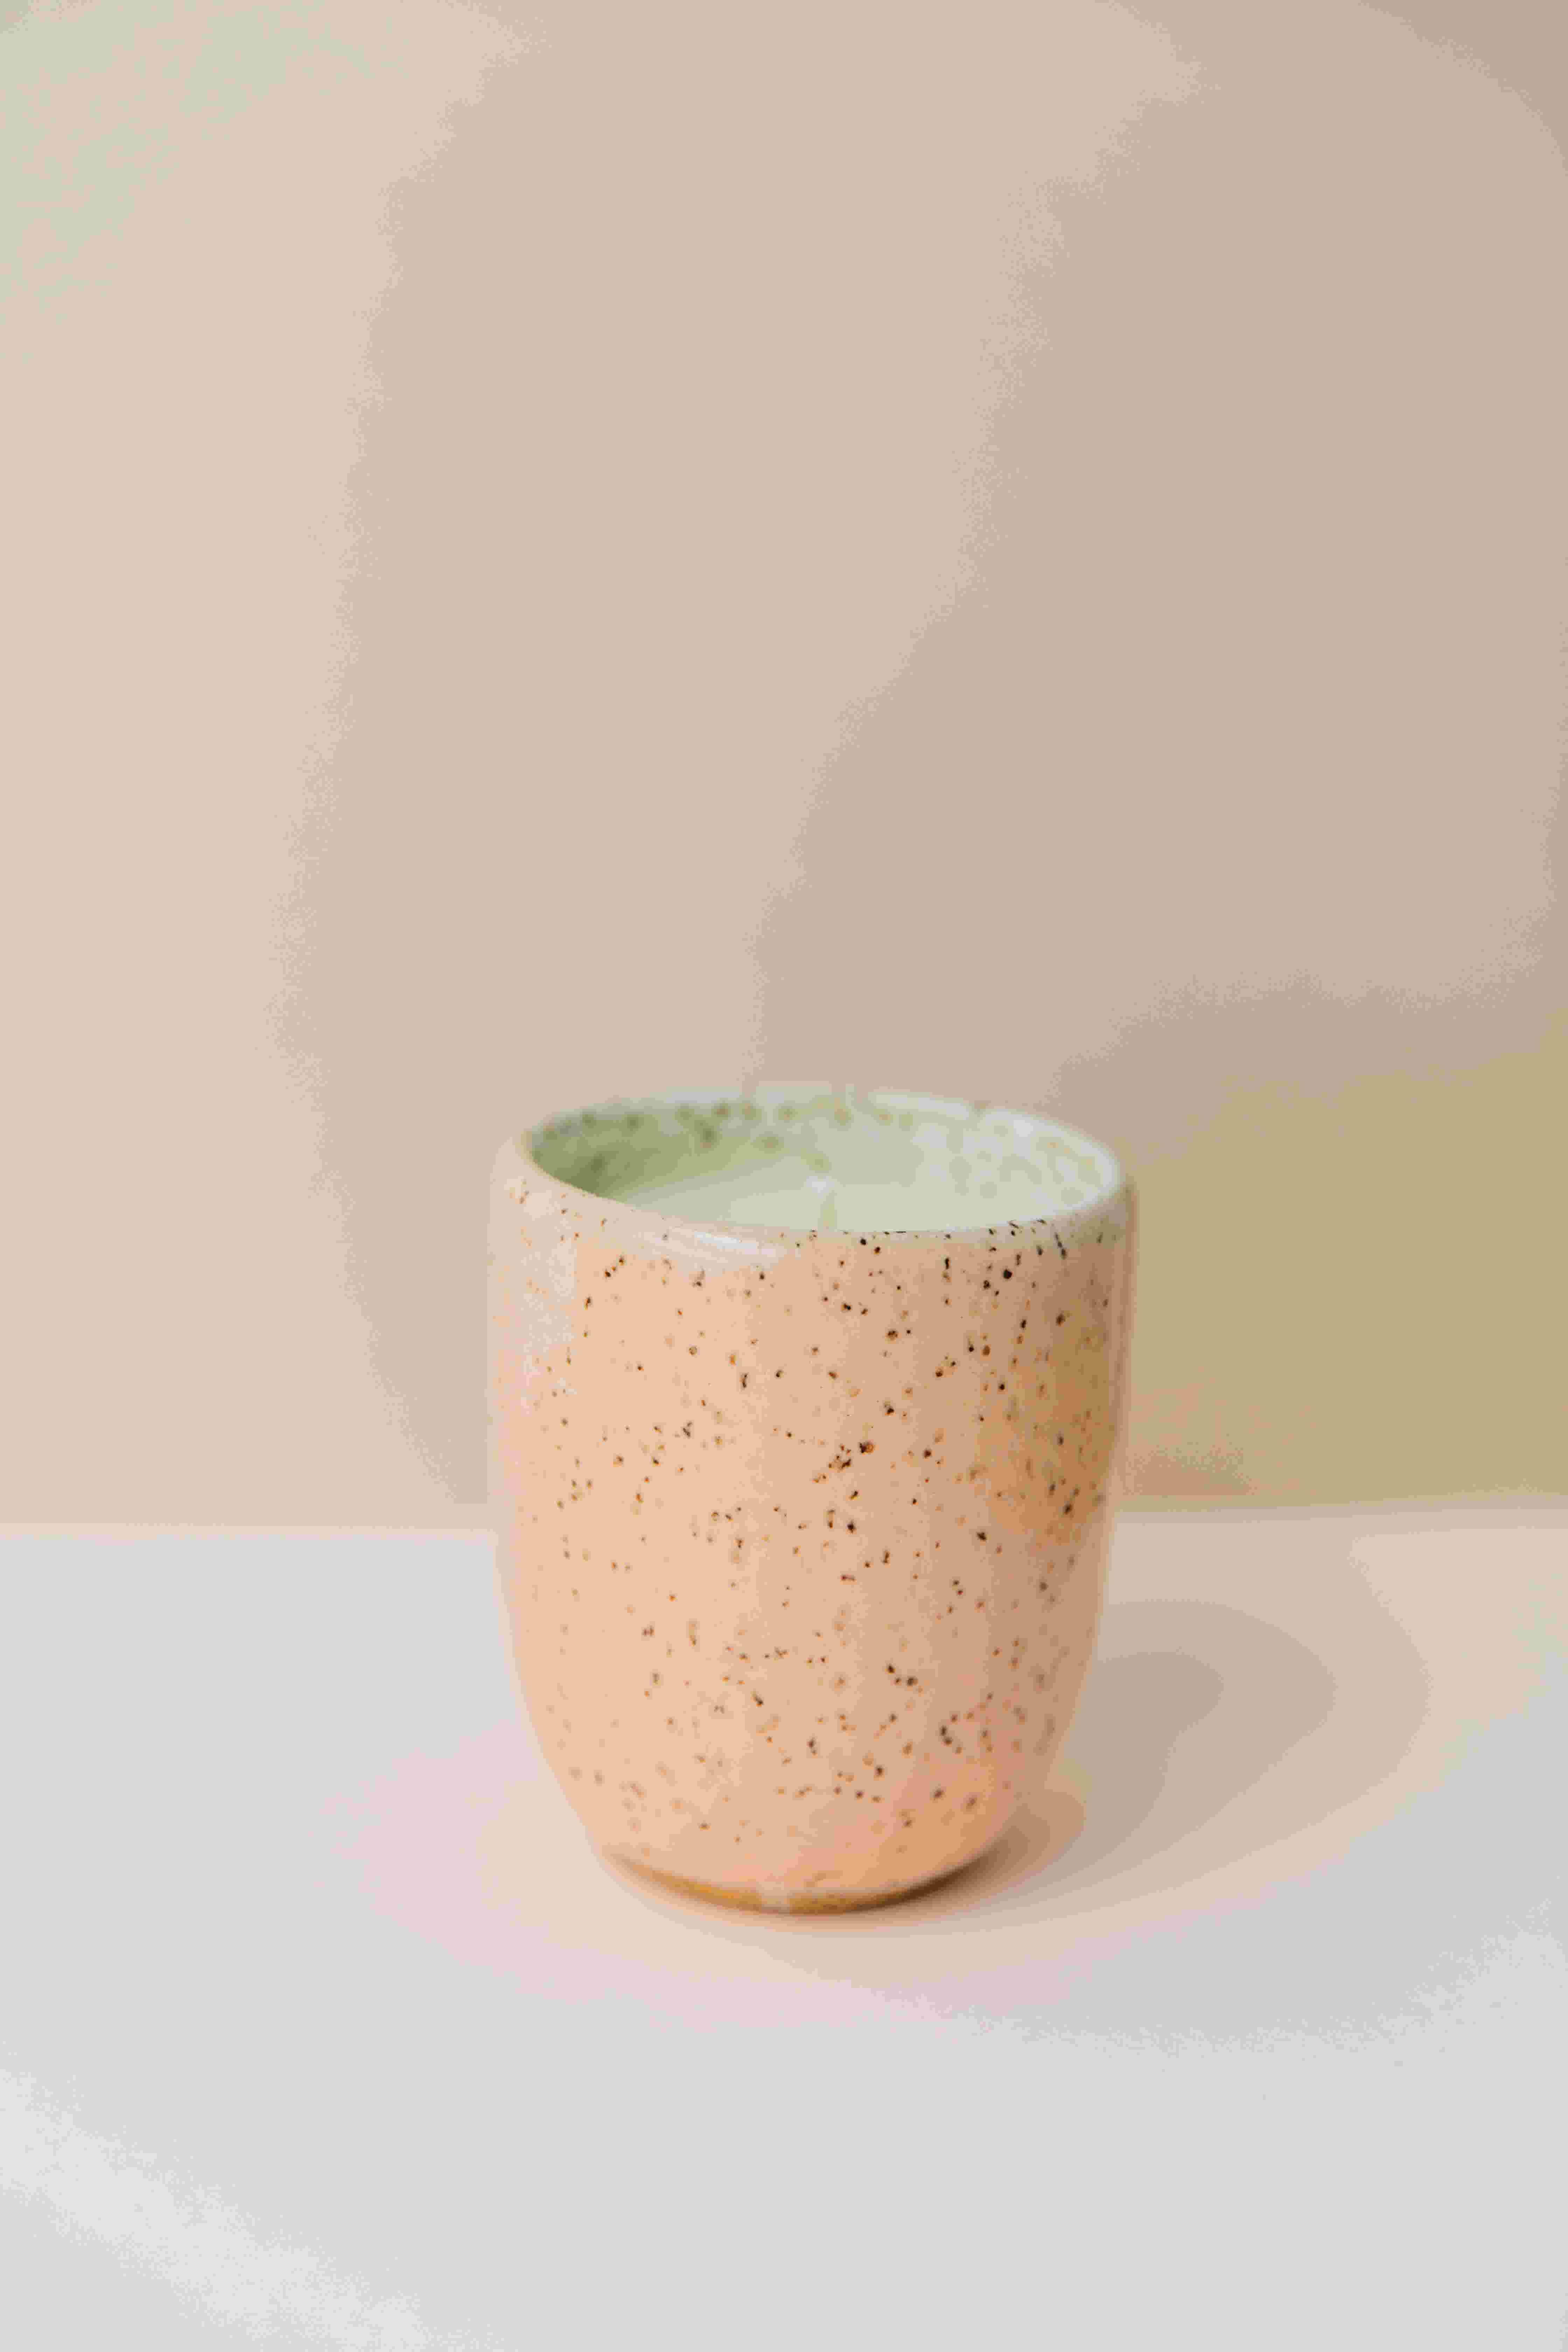 Whitney Port x Favor's Tahquitz candle in a glossy, speckled peach colored ceramic container